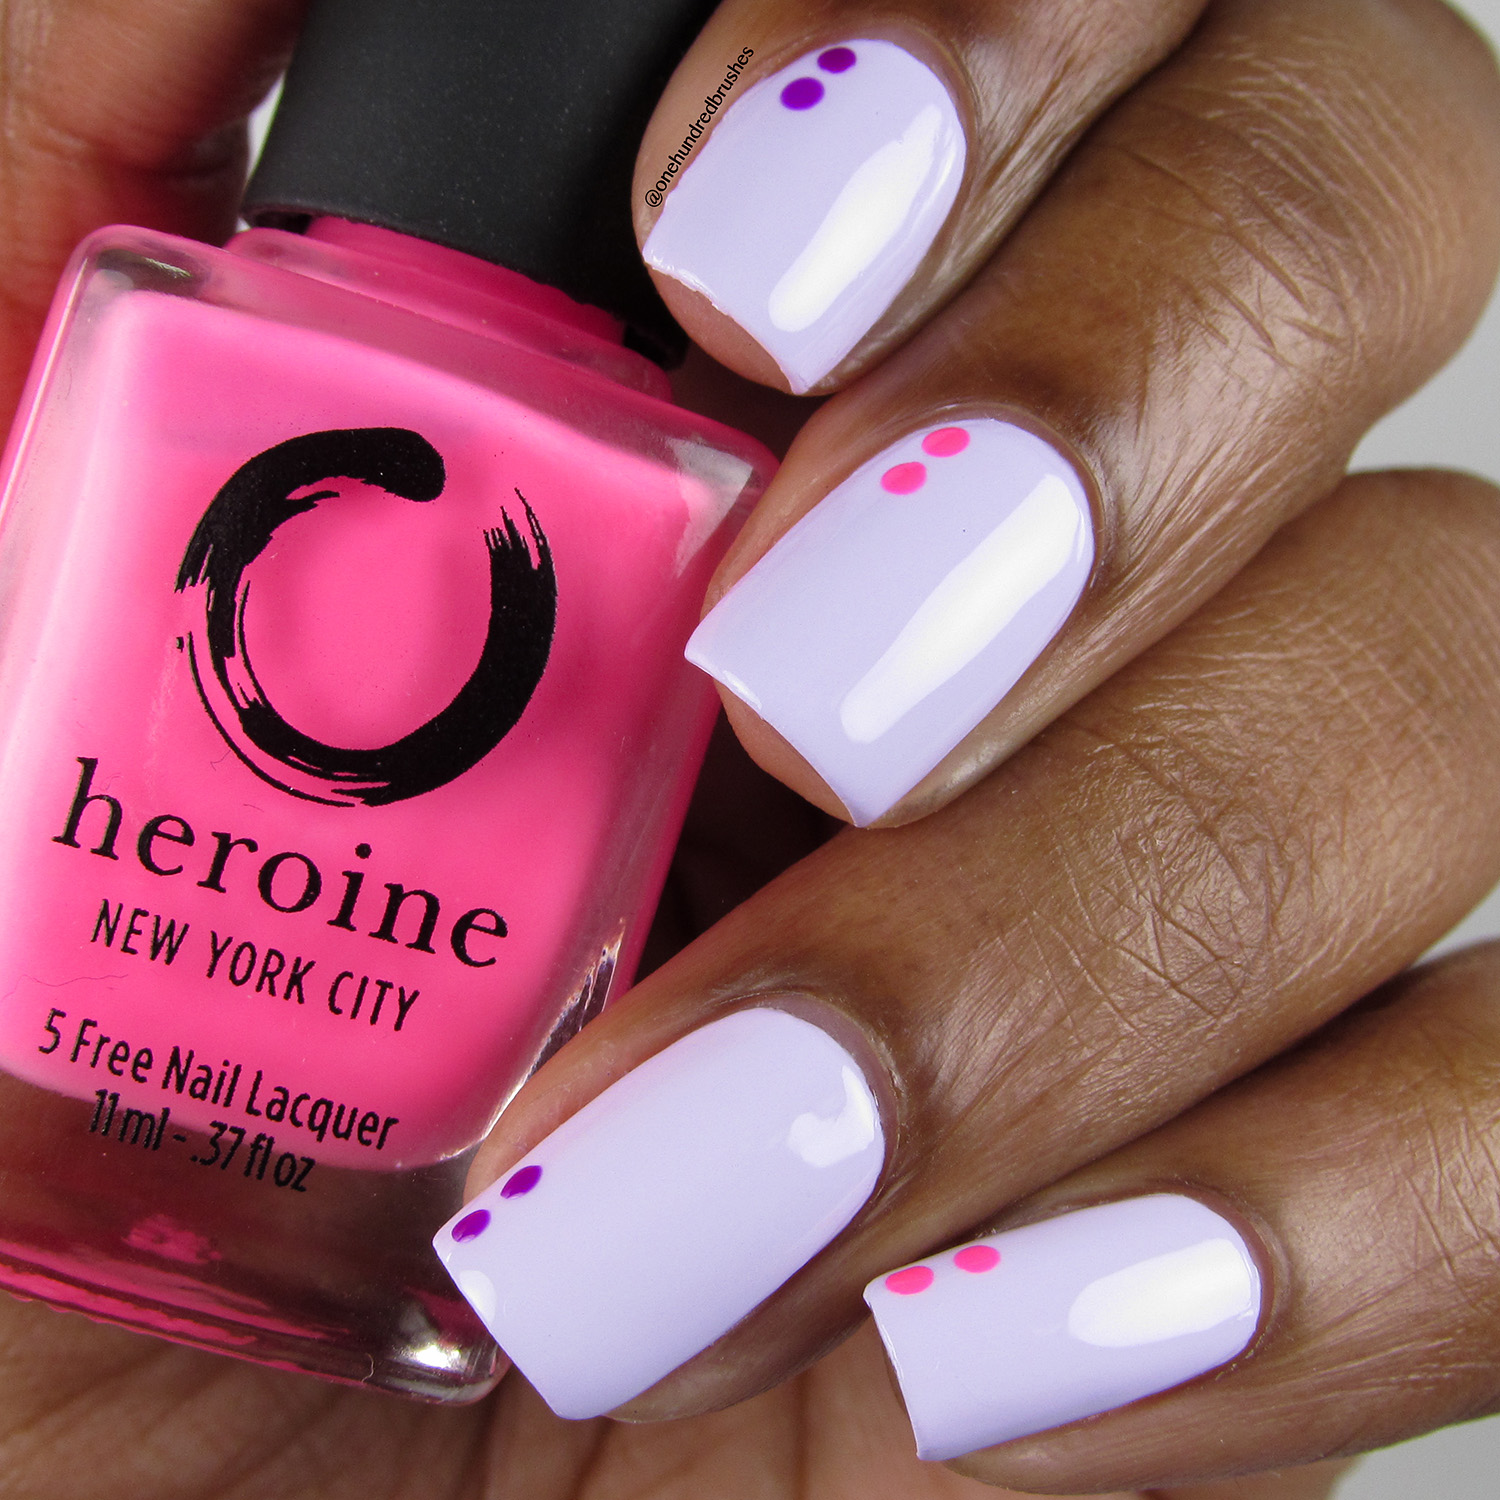 Two Dot Mani on Lilac It w T-M-N and Mean Girl - Bottle front - Heroine NYC